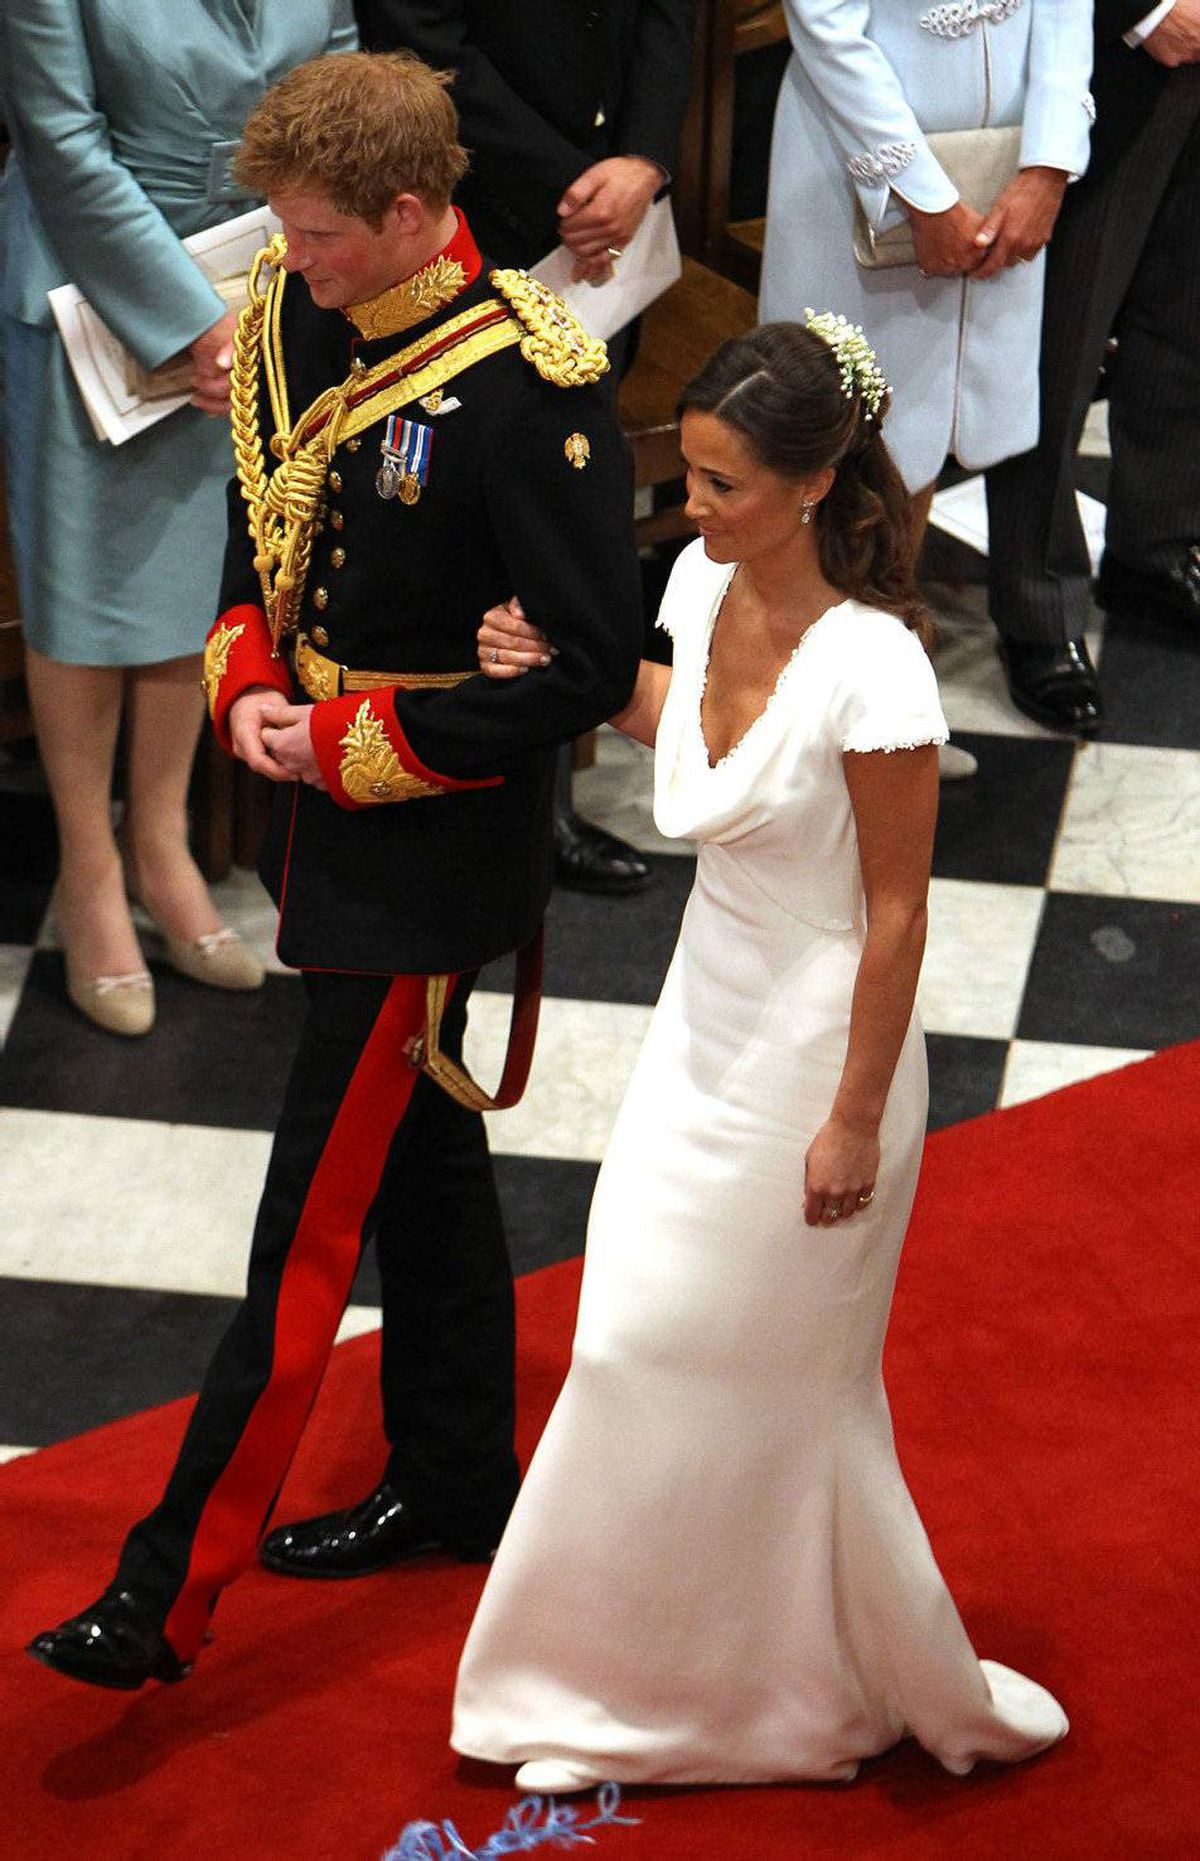 The secondary Pippa scandal turned out to be nothing more than royal watchers' wishful thinking. Despite rumours, Prince Harry and Pippa did not become an item after the wedding.